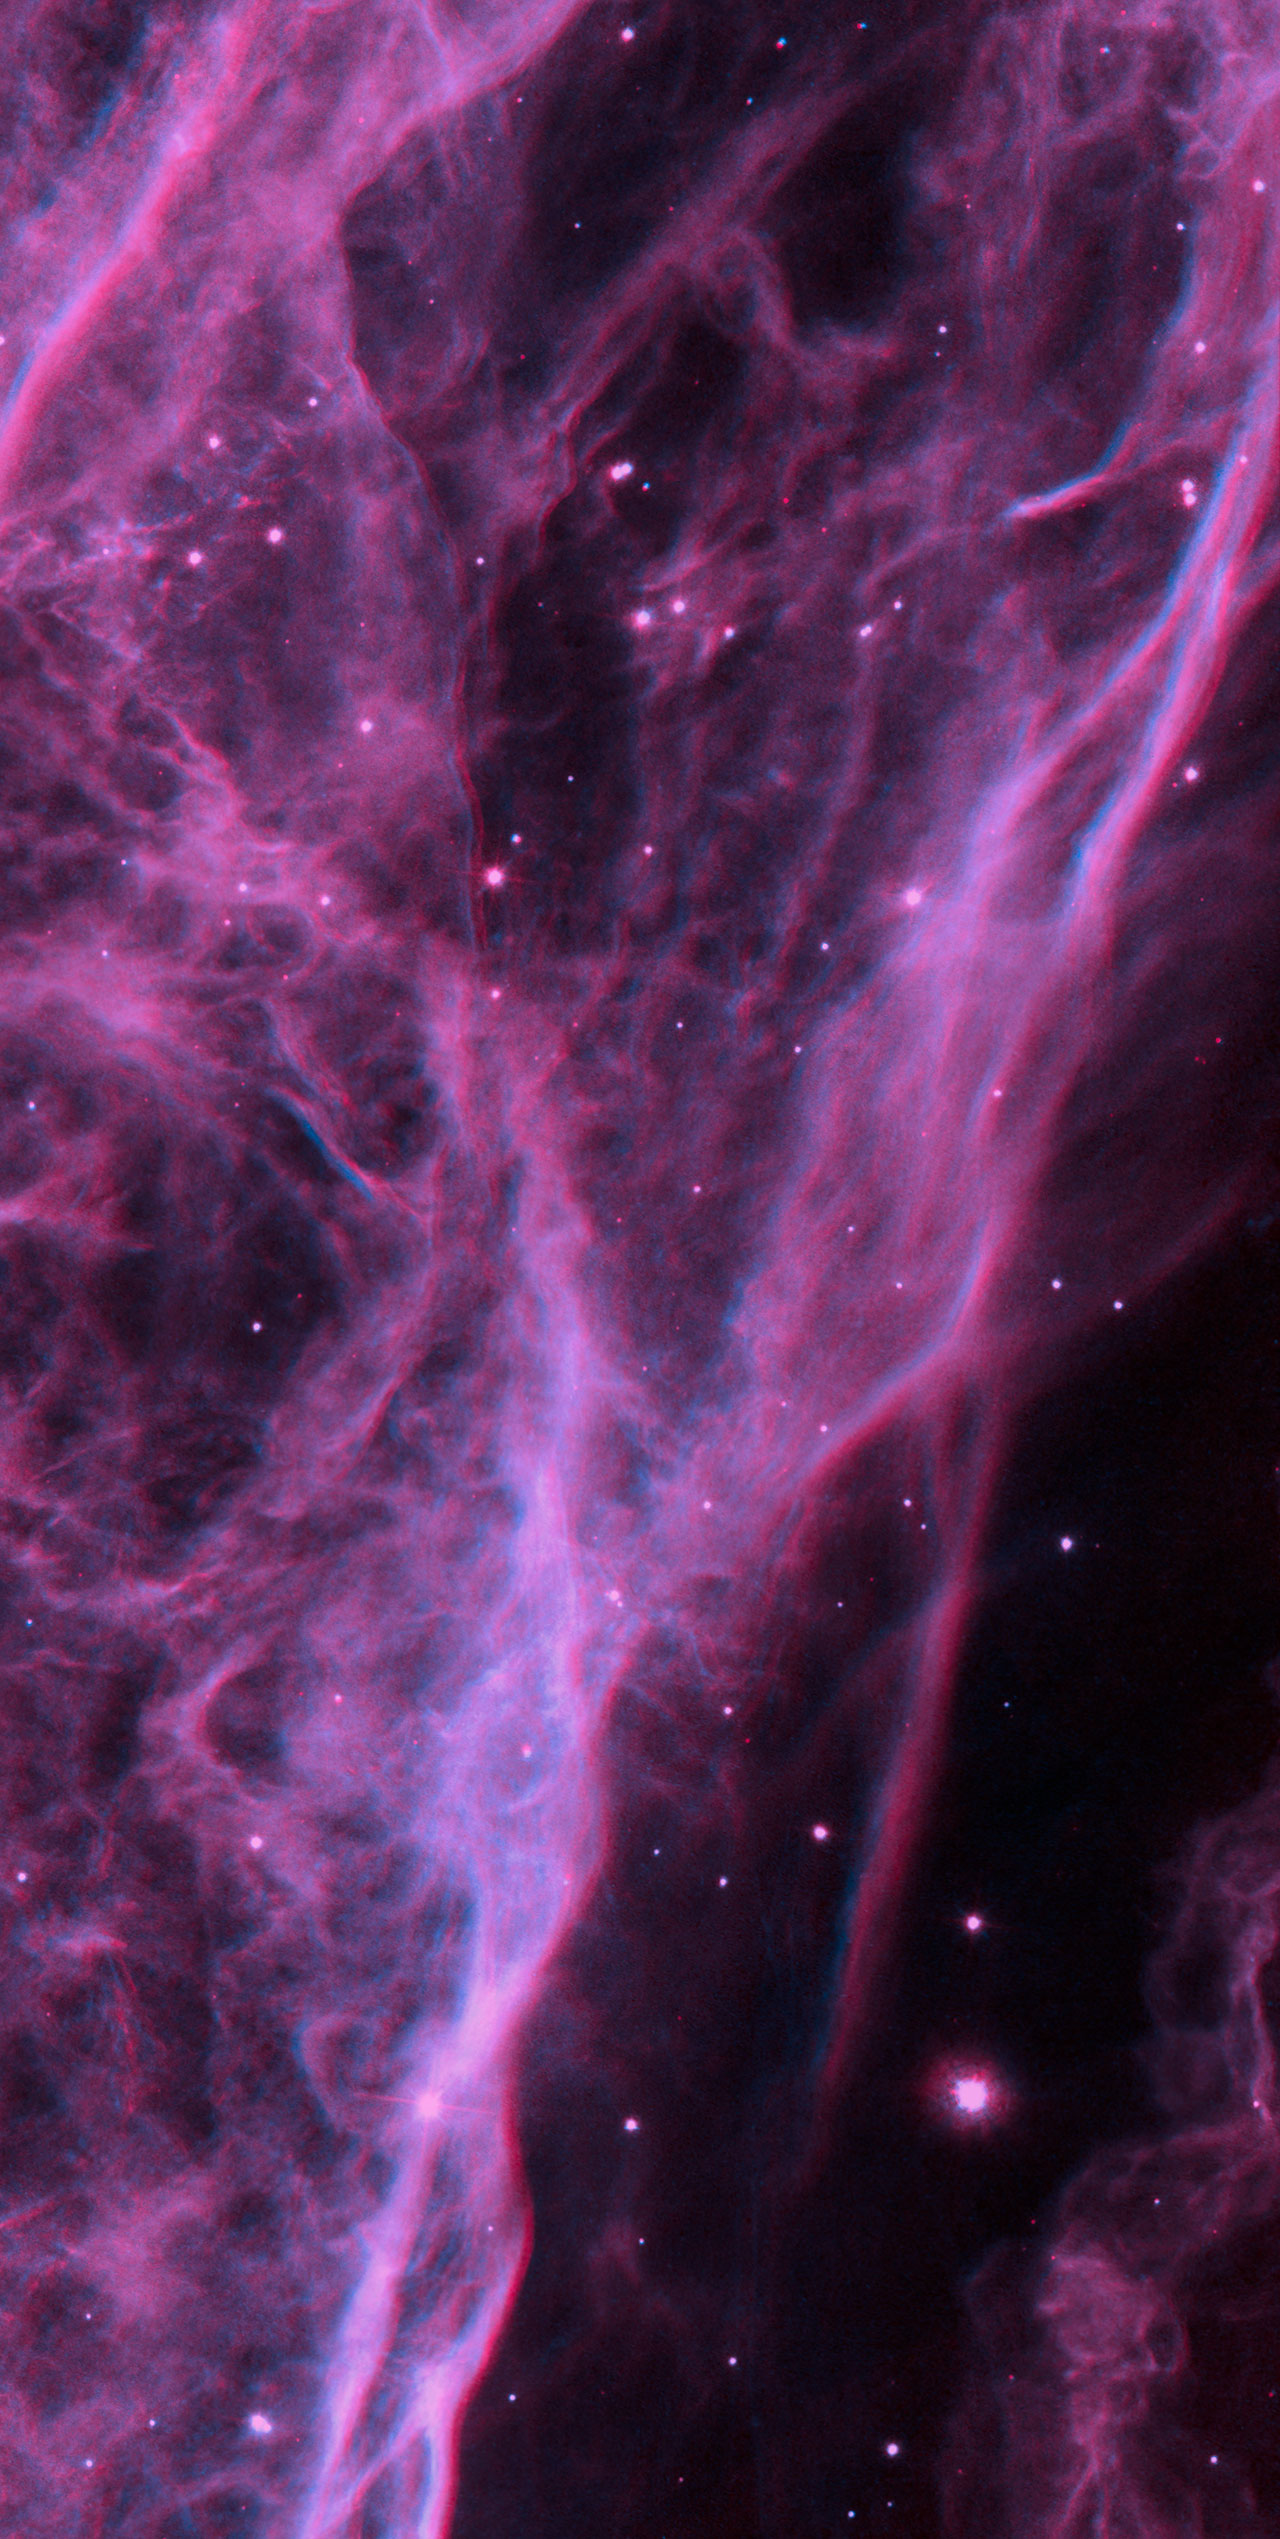 3D image of the Veil Nebula